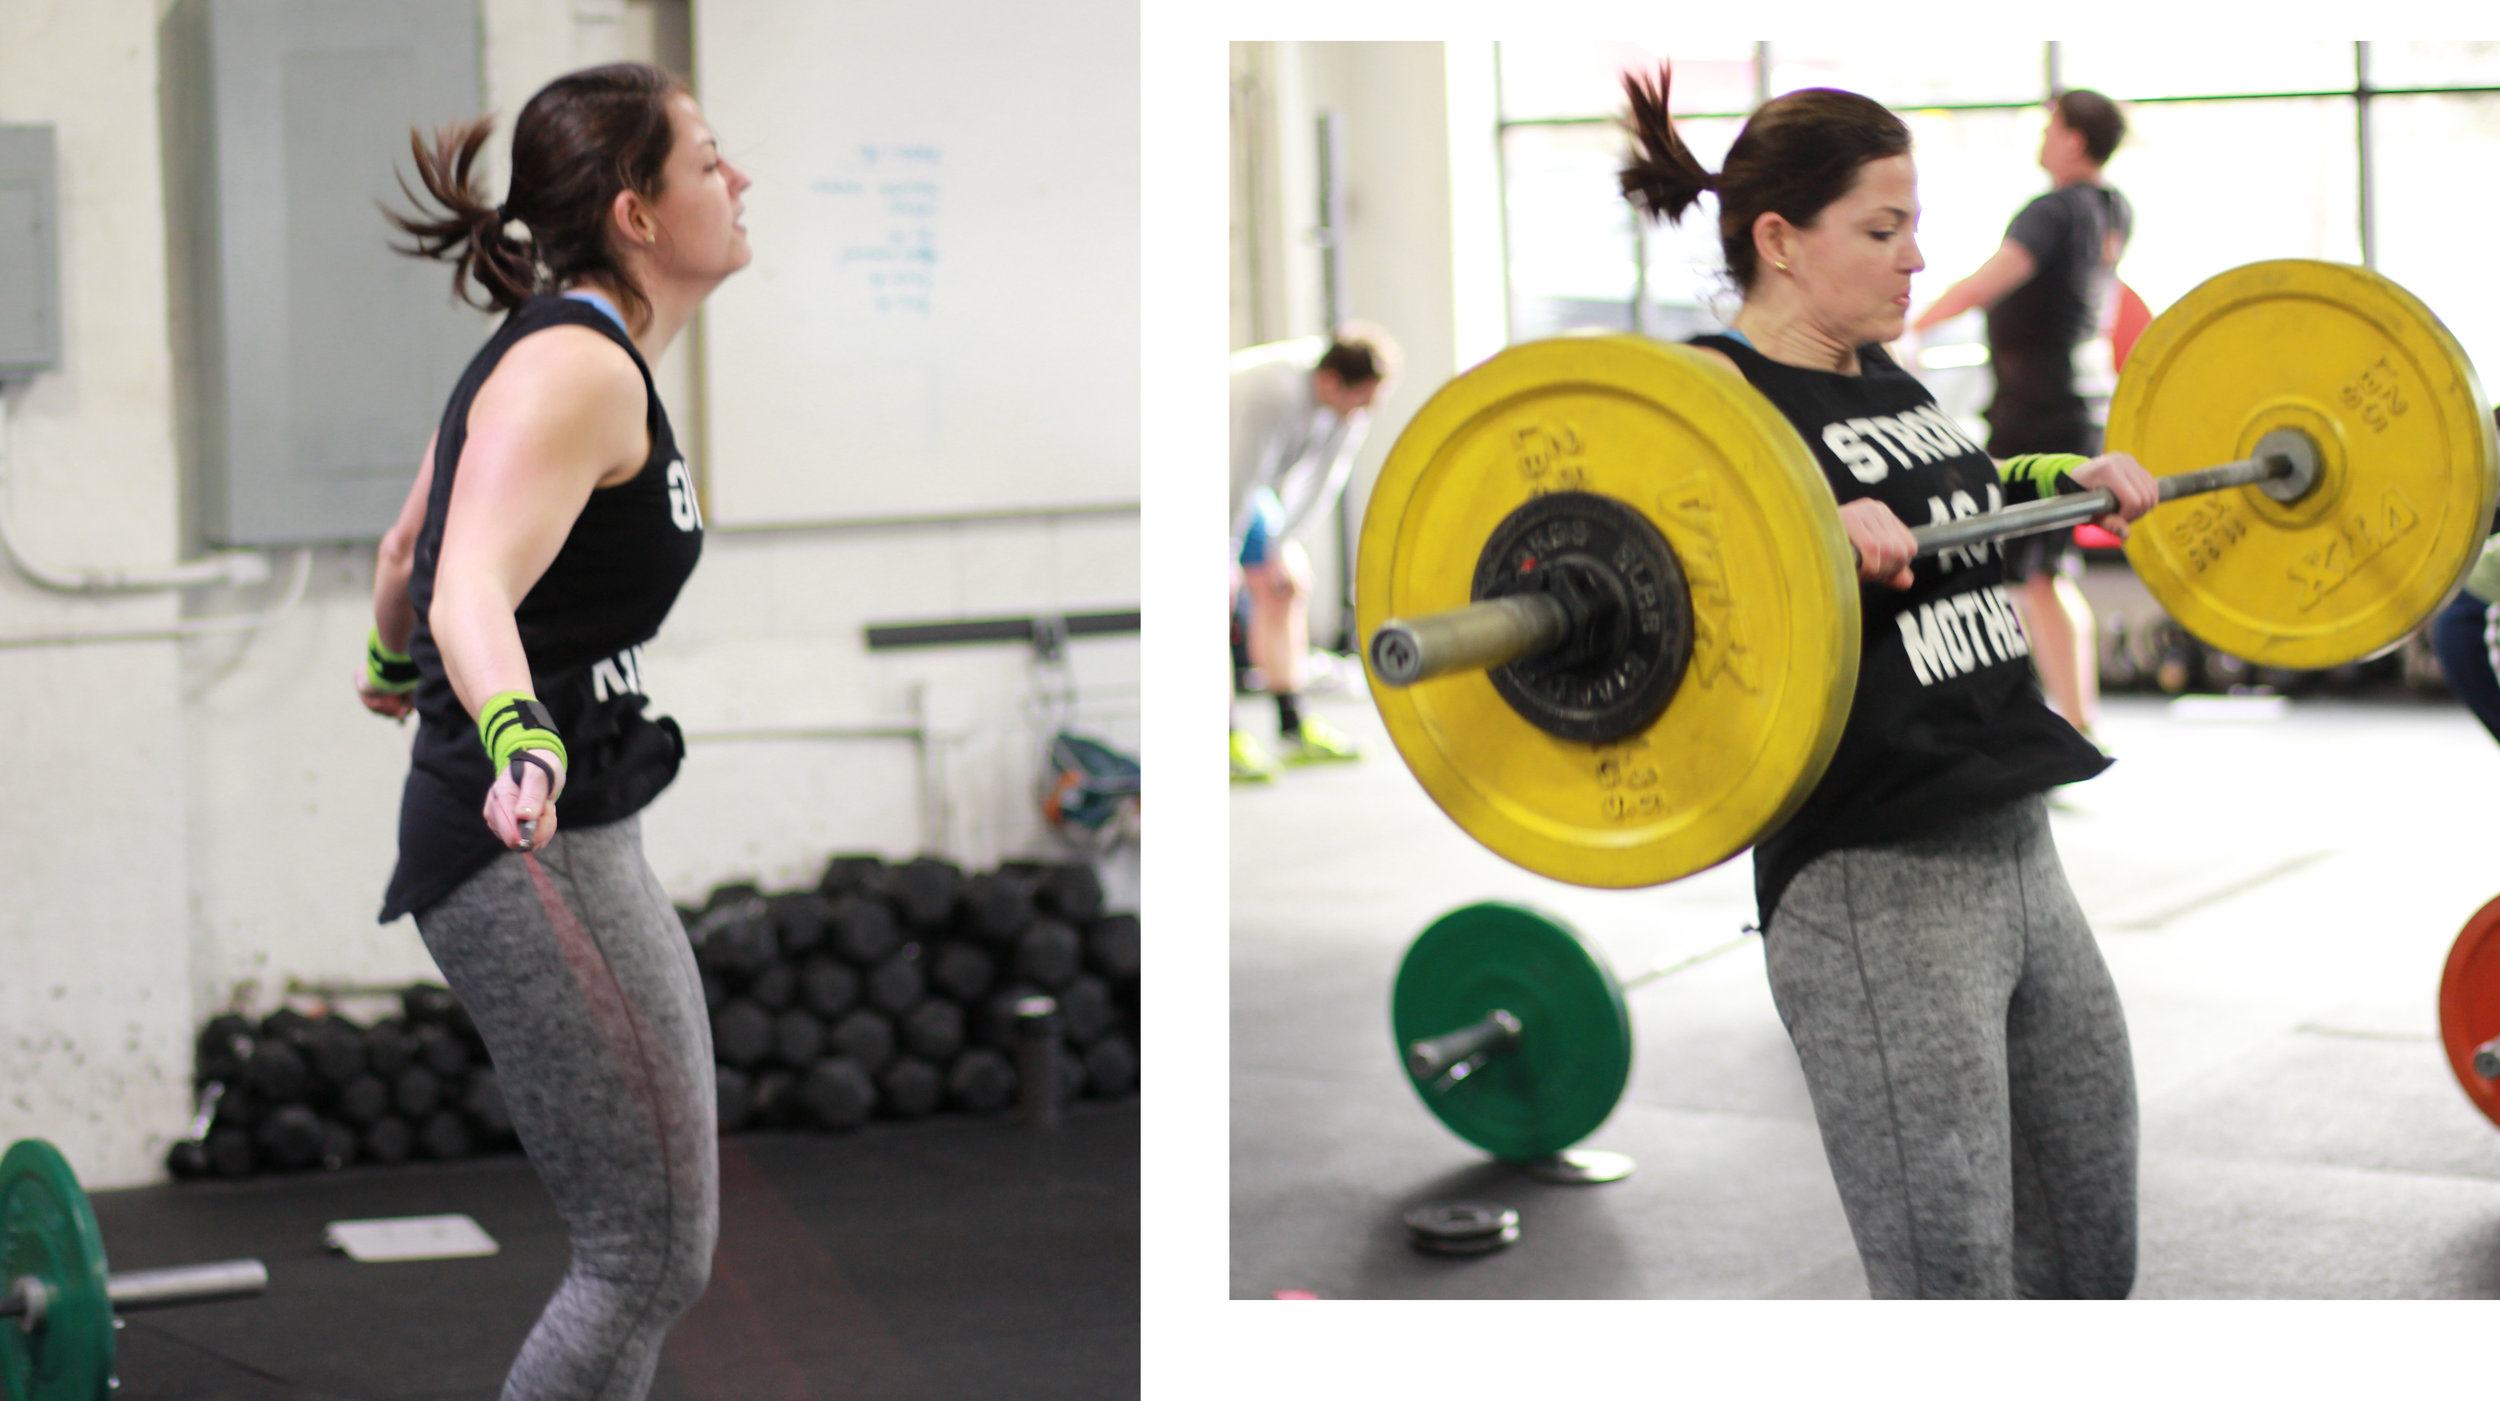 """Here's PVCF athlete, Loren Davine! Training in CrossFit for ten years and raising twins, she's earned every thread on this tank top: """"Strong as a Mother!"""""""